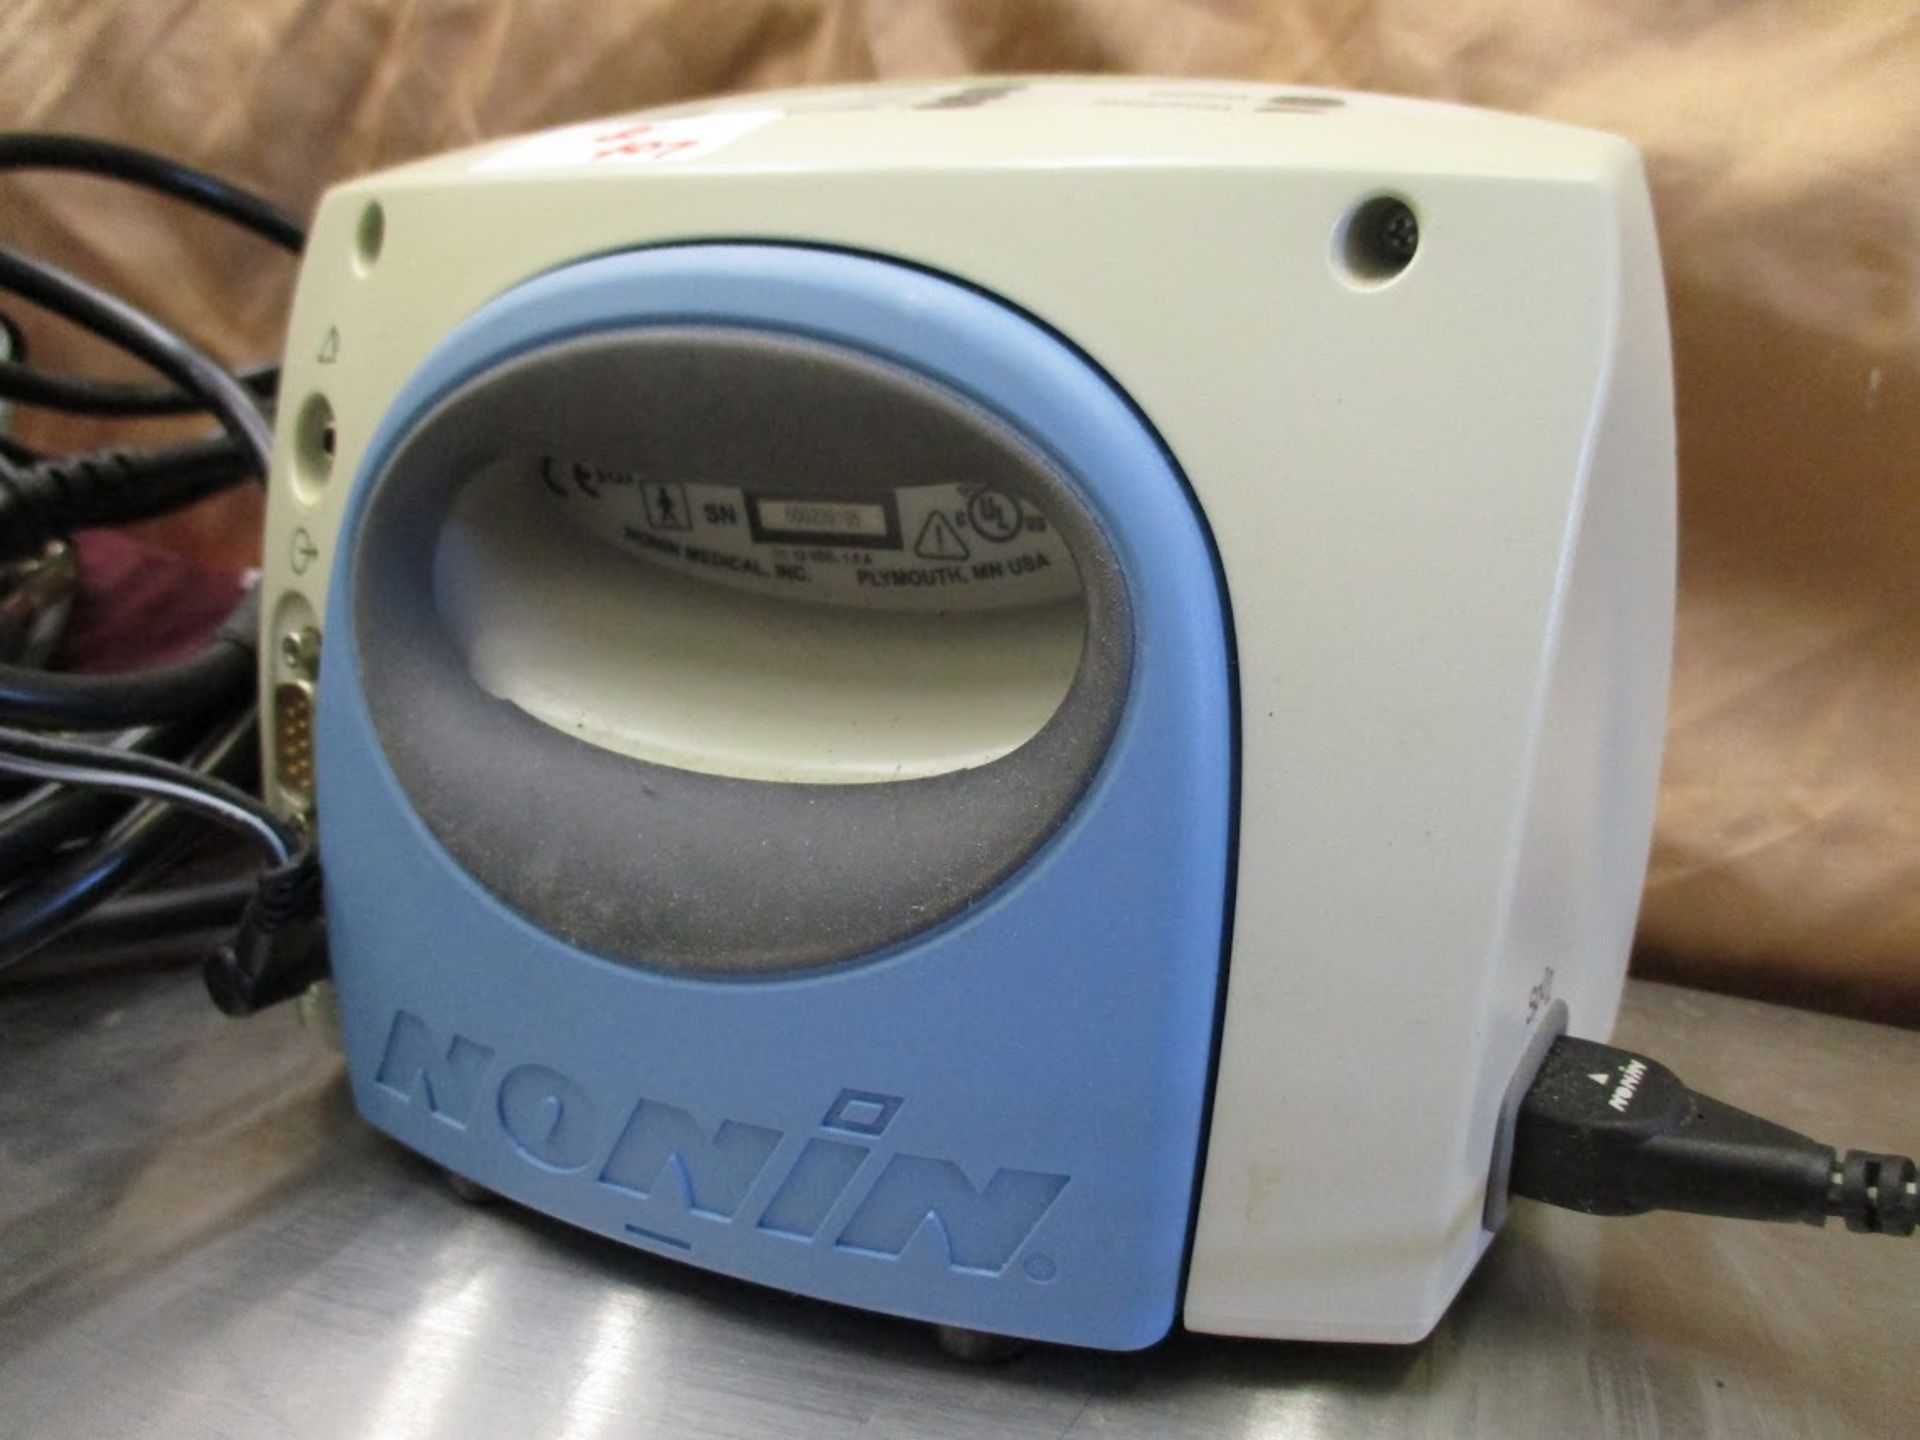 Nonin 9600 Pulse Oximeter with blood pressure cuffs. 115V - Image 2 of 7